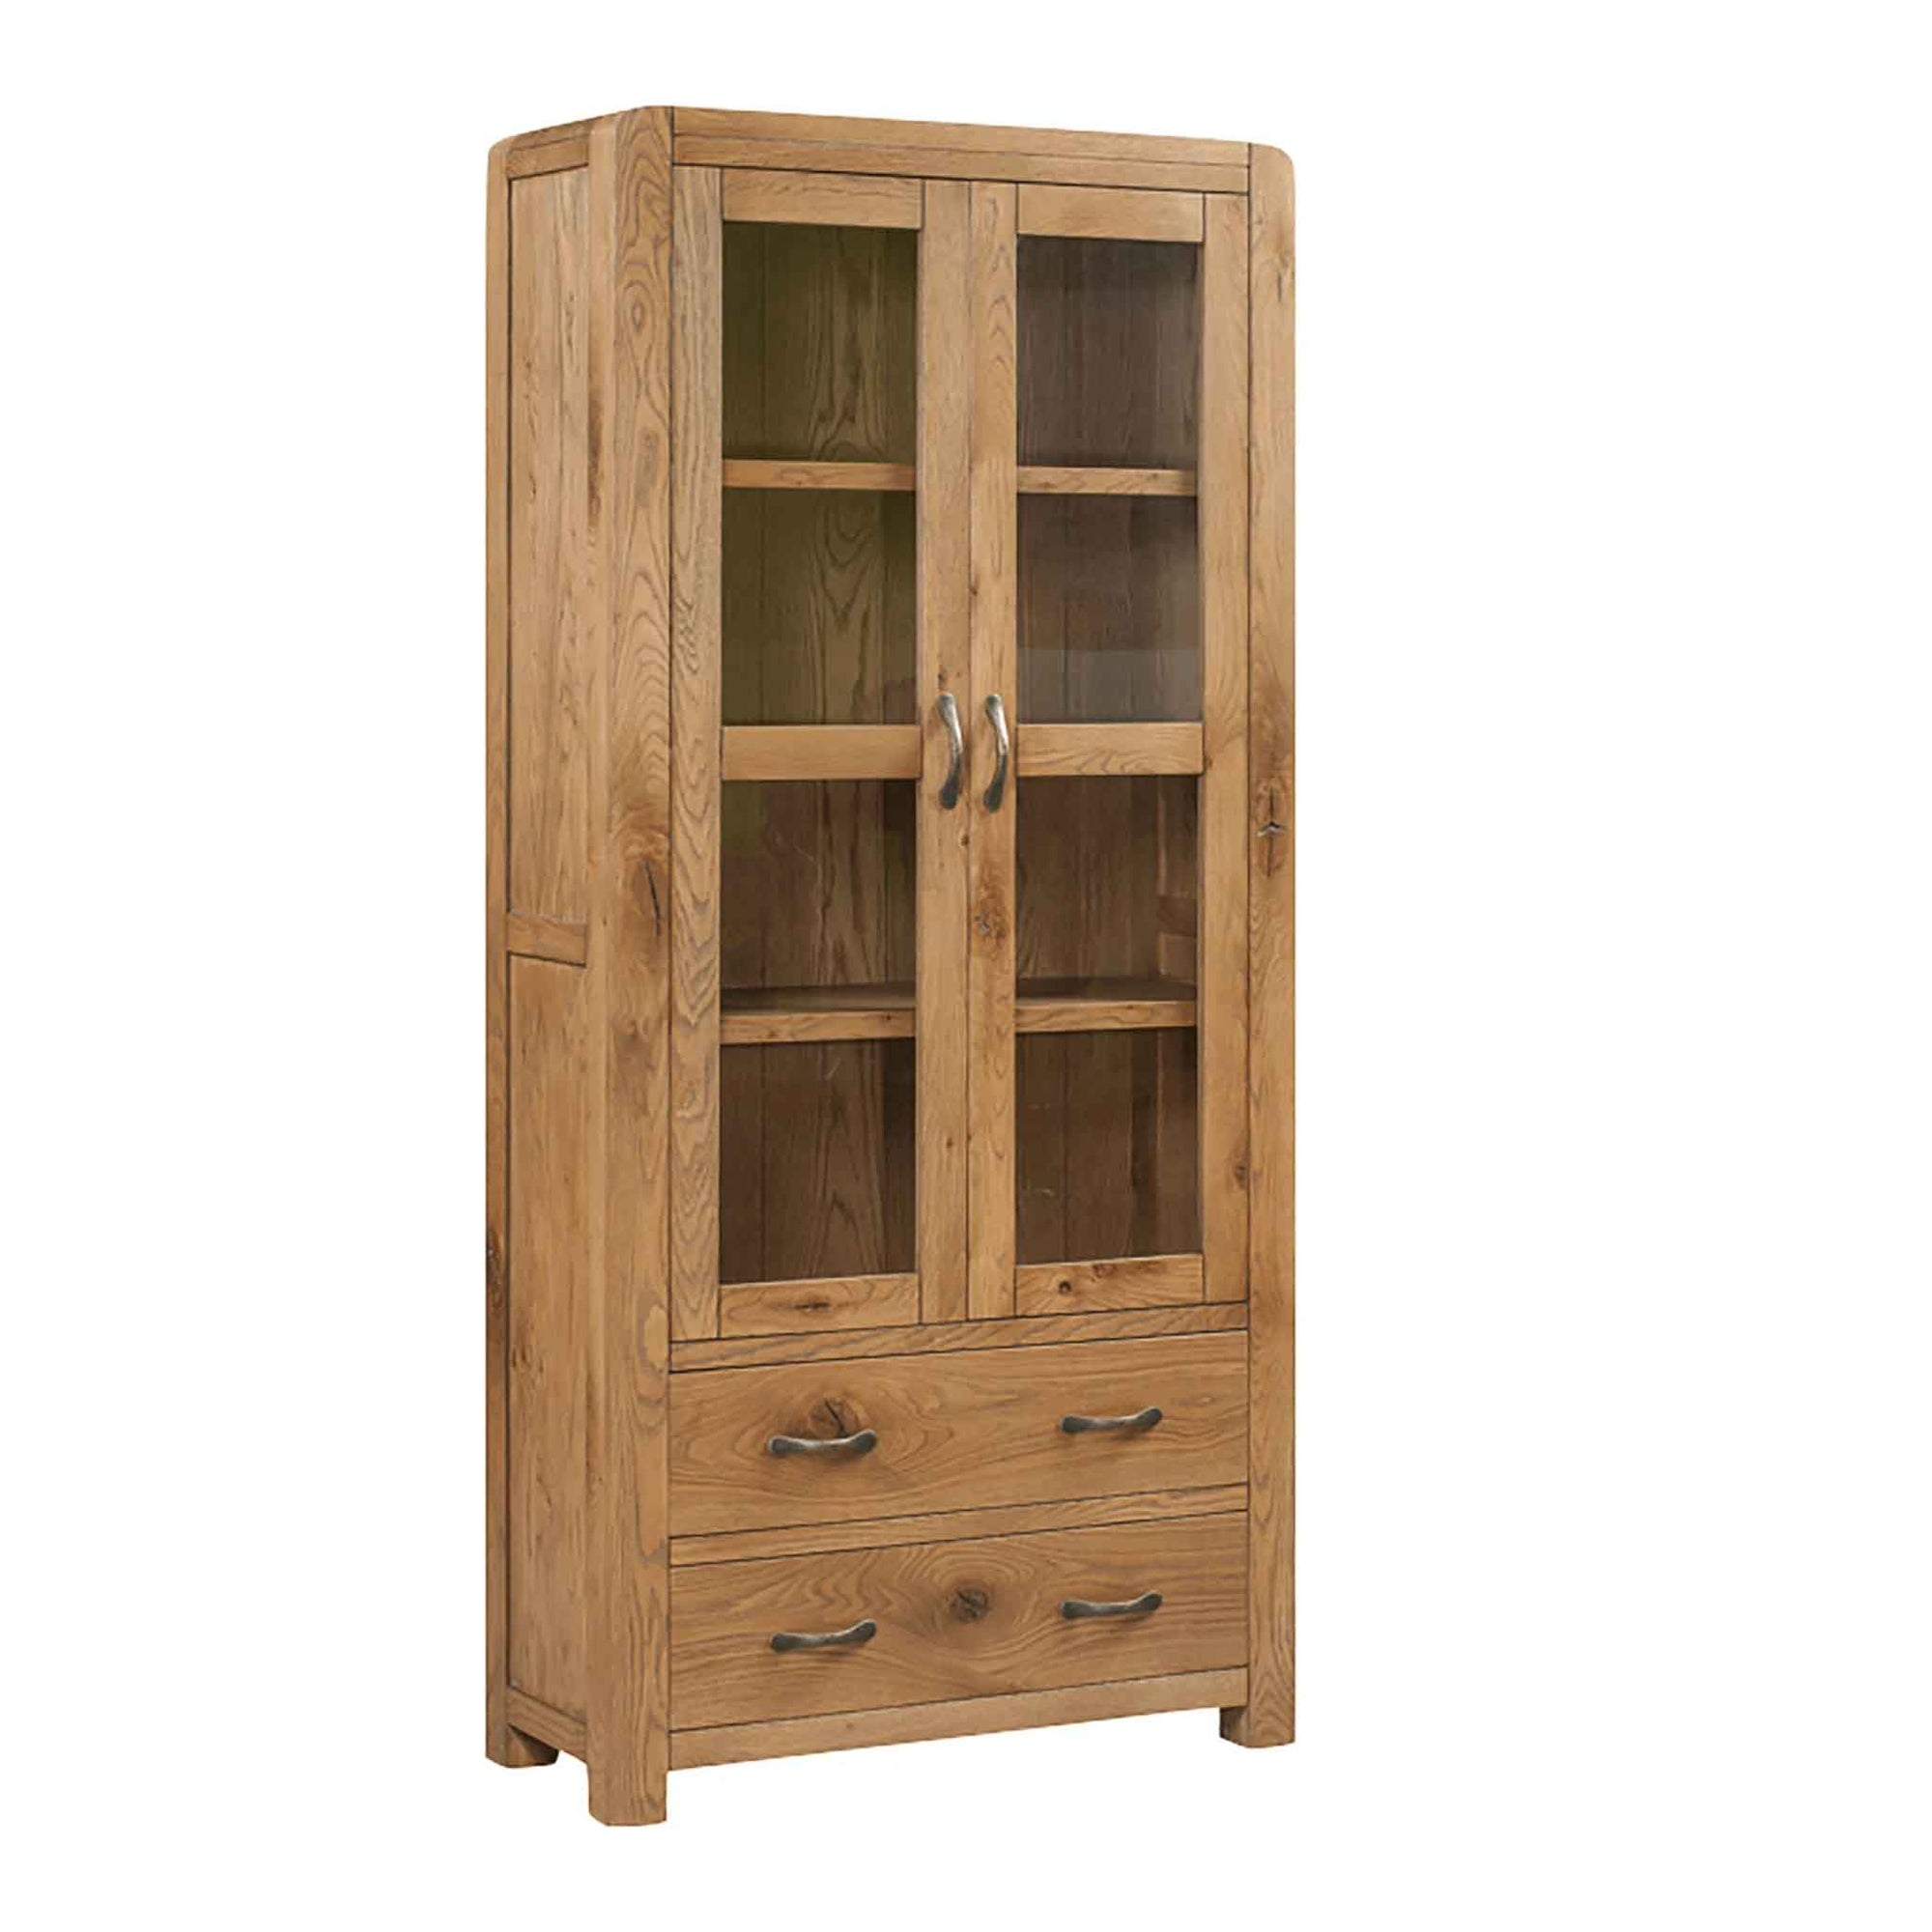 The Capri Oak Chunky Rustic Large Display Cabinet with Glass from Roseland Furniture